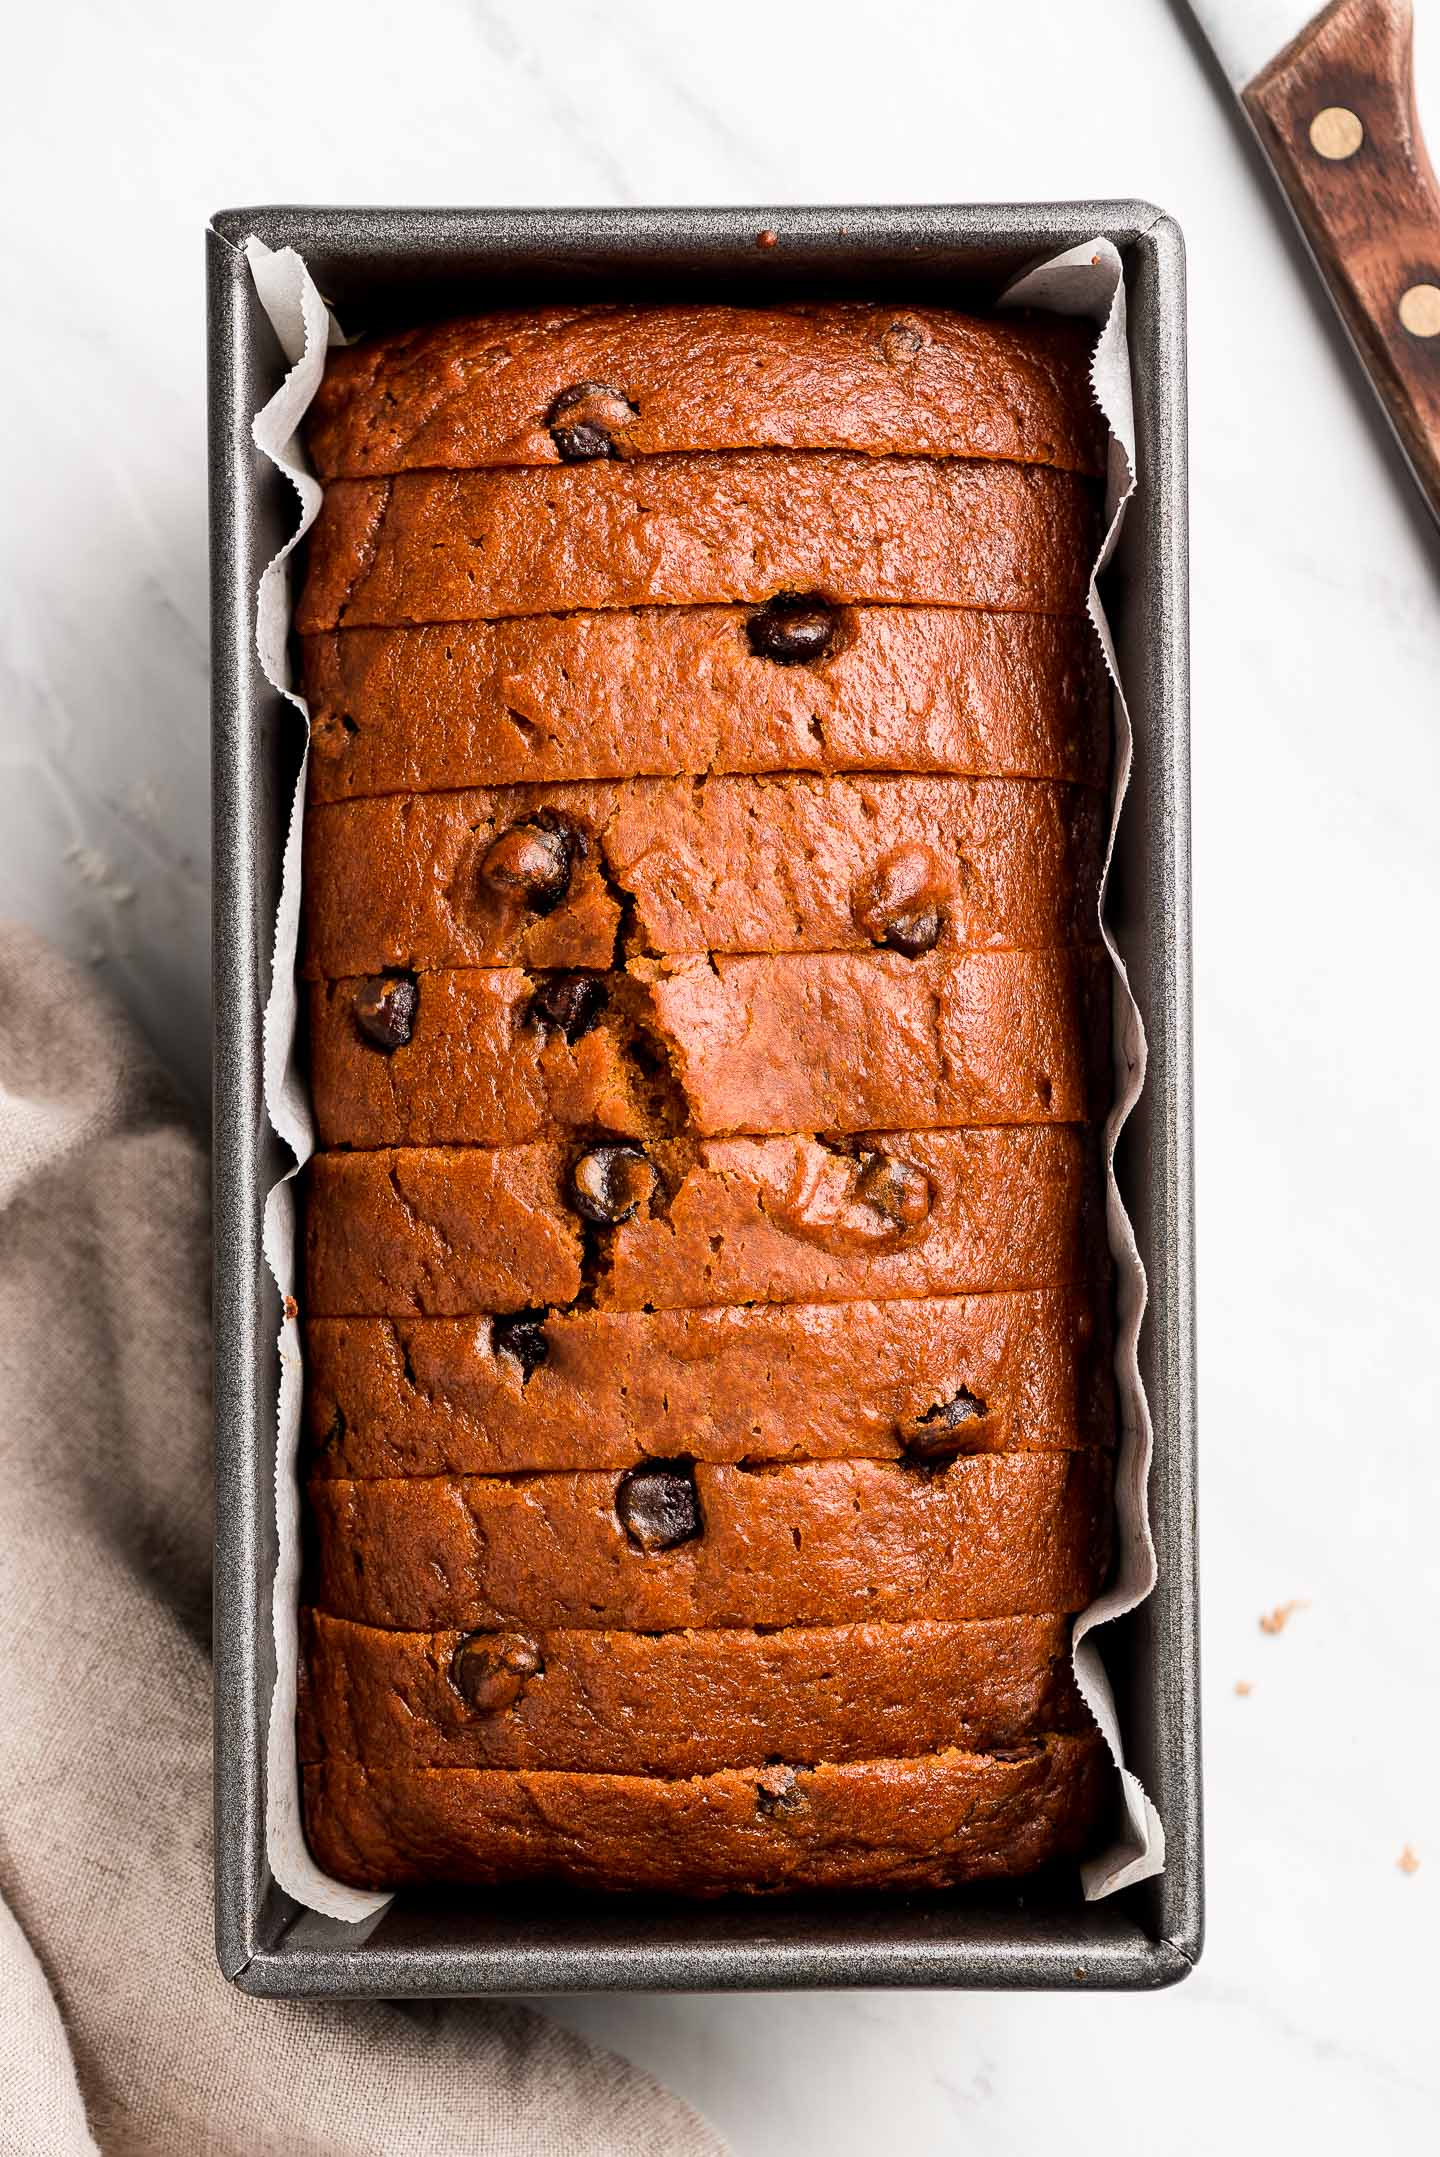 Chocolate Chip Pumpkin Bread sliced and in a loaf pan.